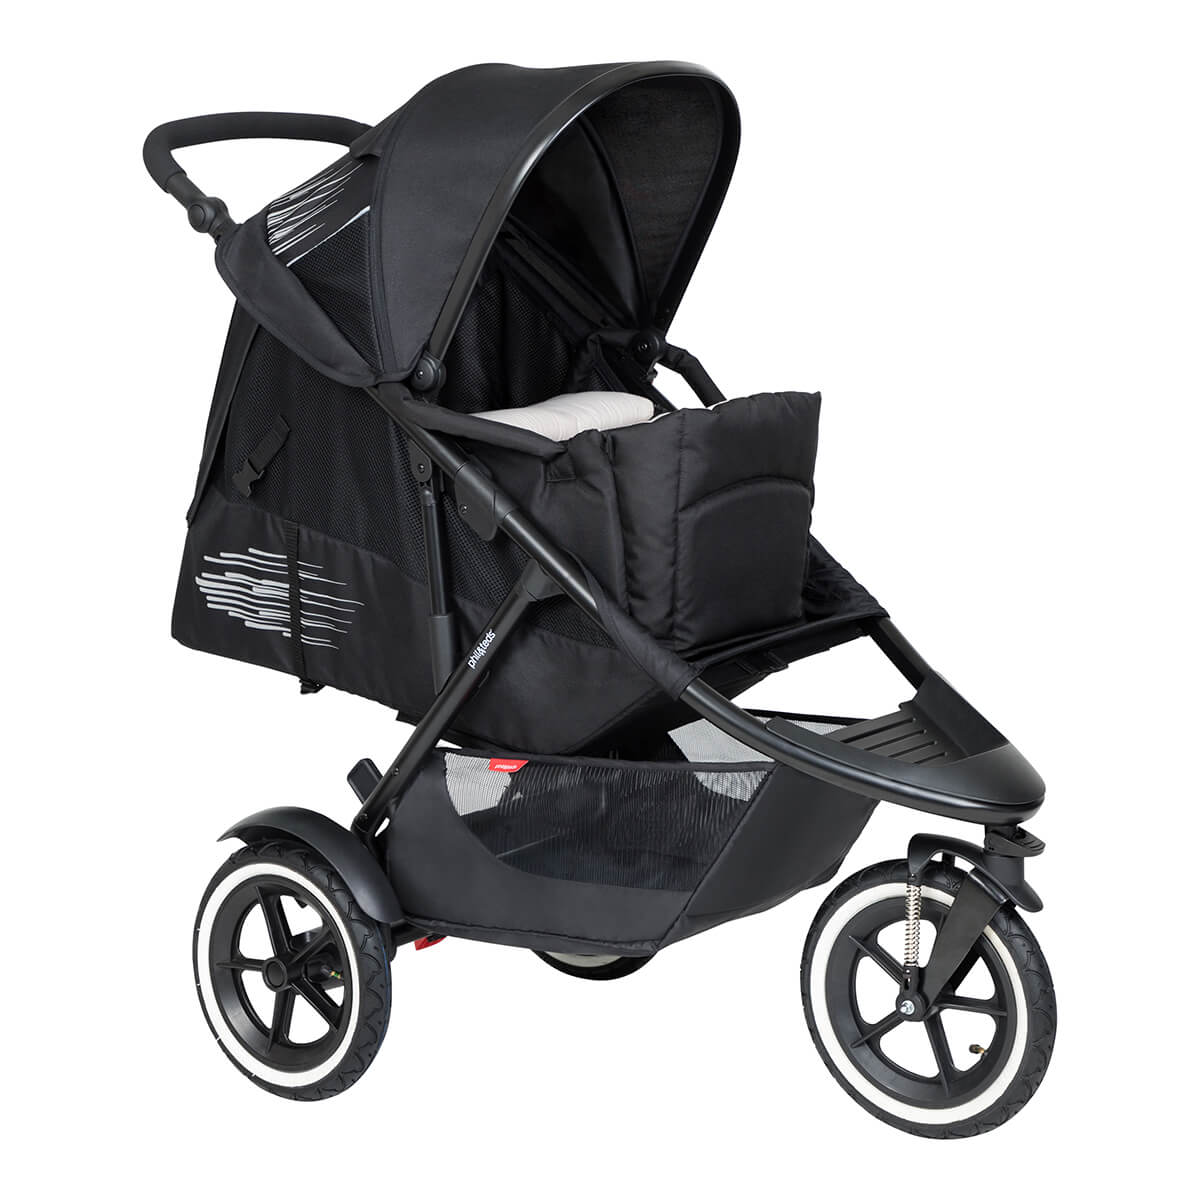 https://cdn.accentuate.io/4381202088013/19466203660482/philteds-sport-buggy-with-cocoon-full-recline-v1626485341479.jpg?1200x1200